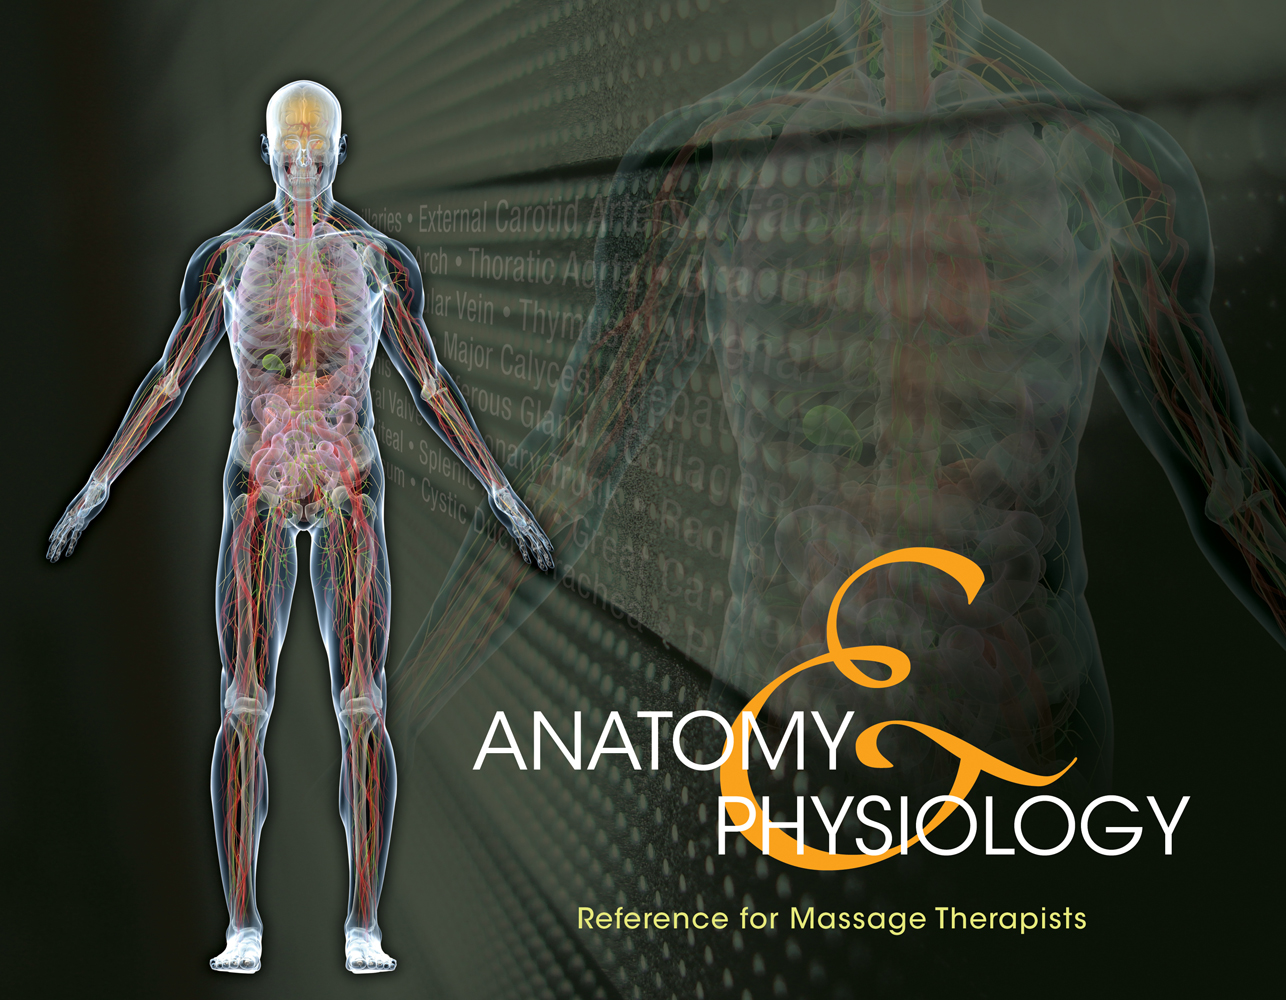 eBook: Anatomy & Physiology Reference for Massage Therapists - 9781285378909(eBook)